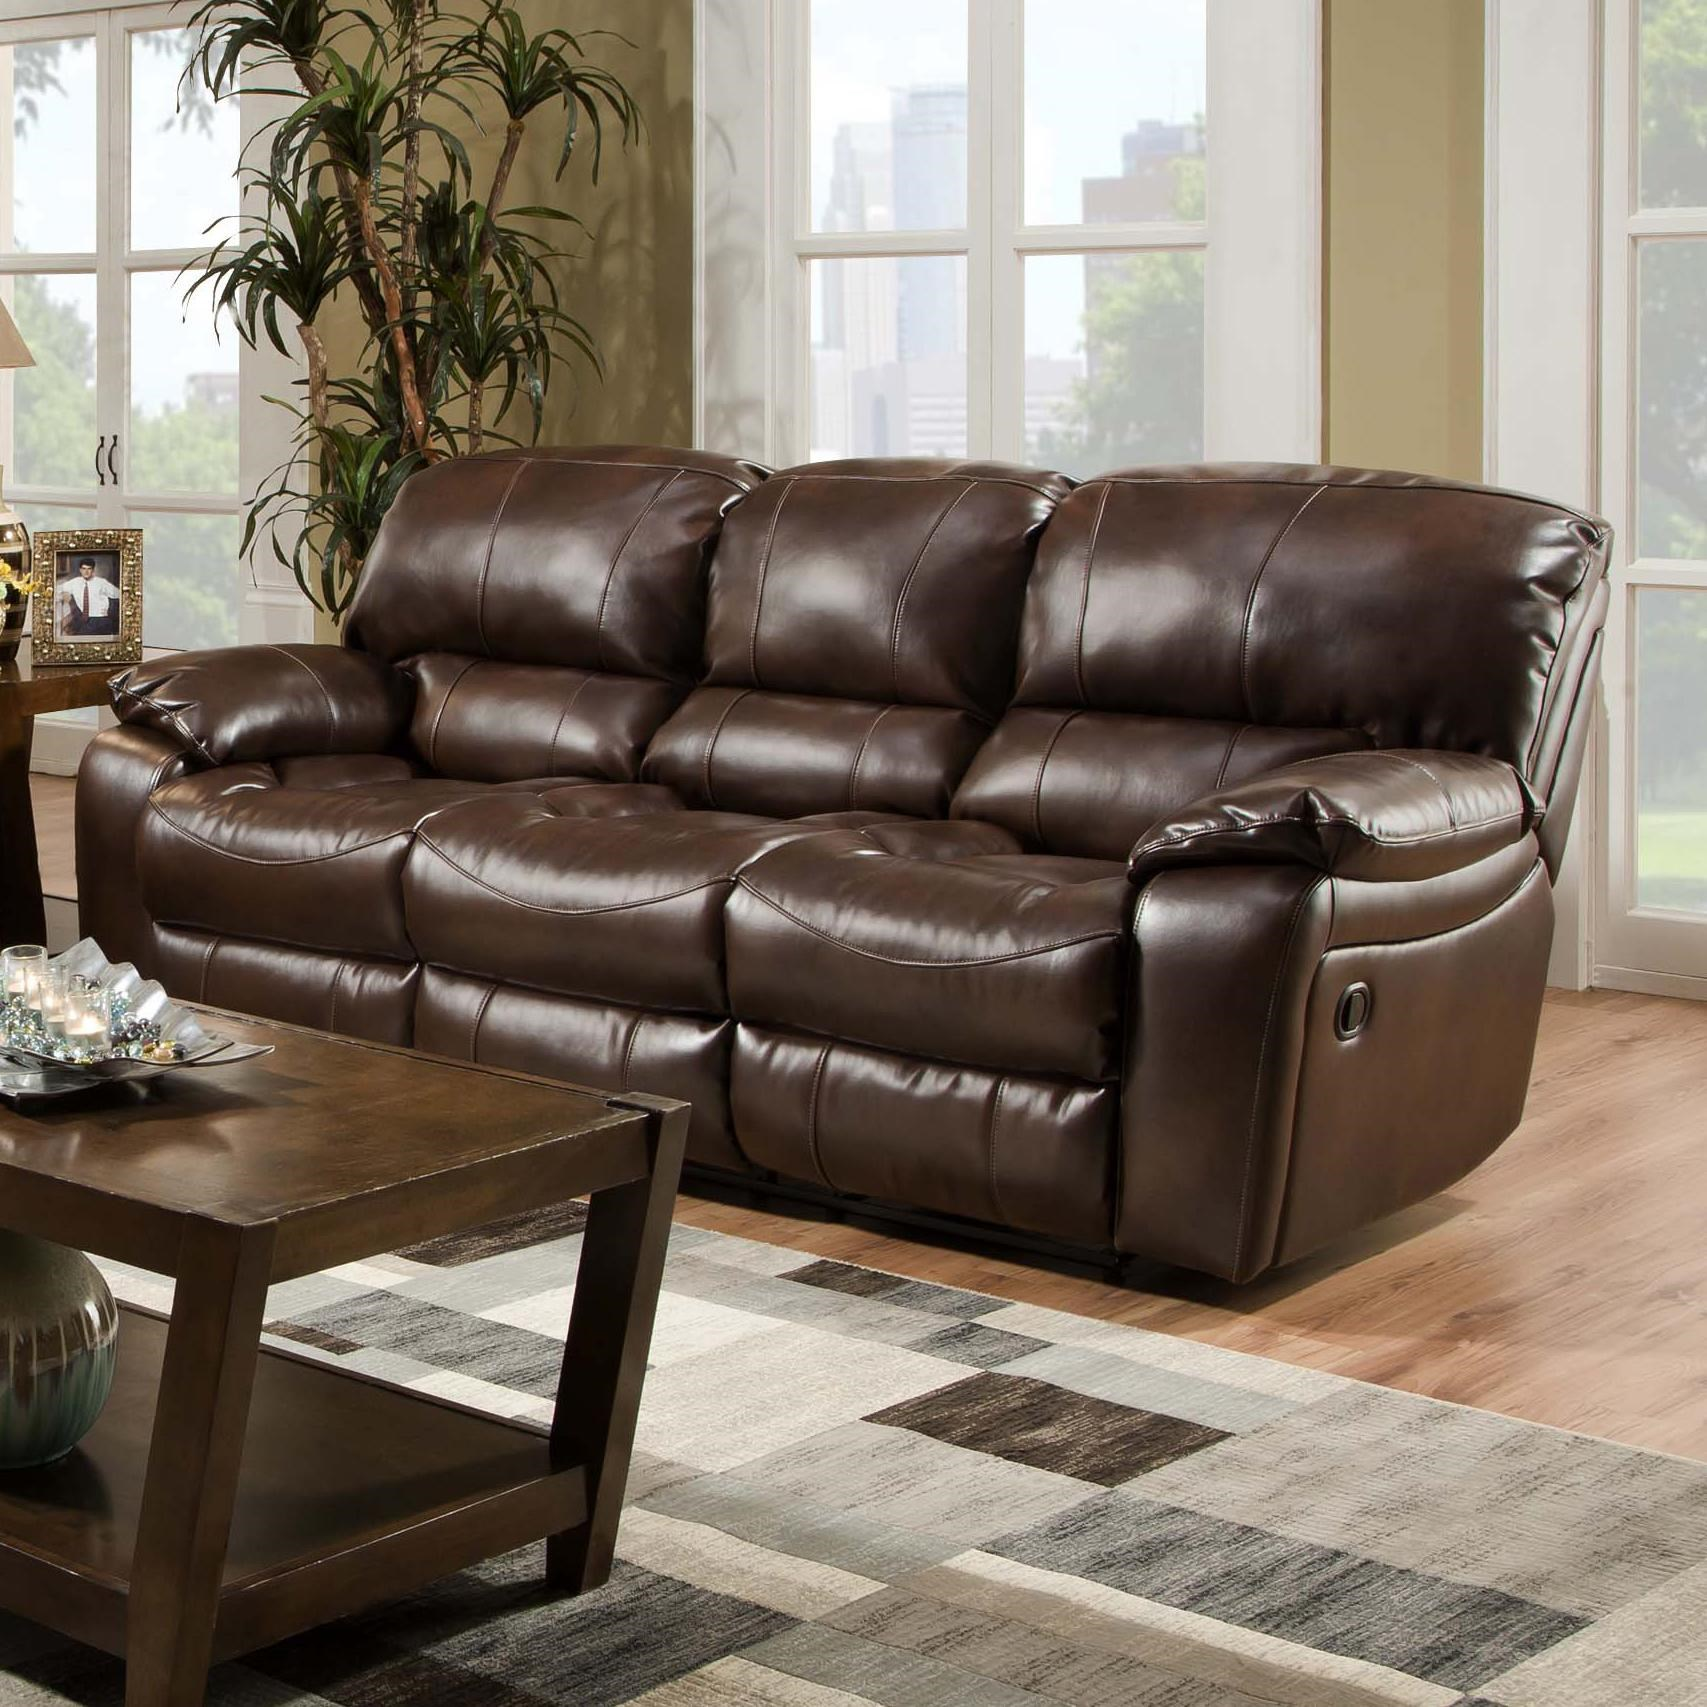 Albany 1750 Casual Reclining Sofa With Pillow Arms